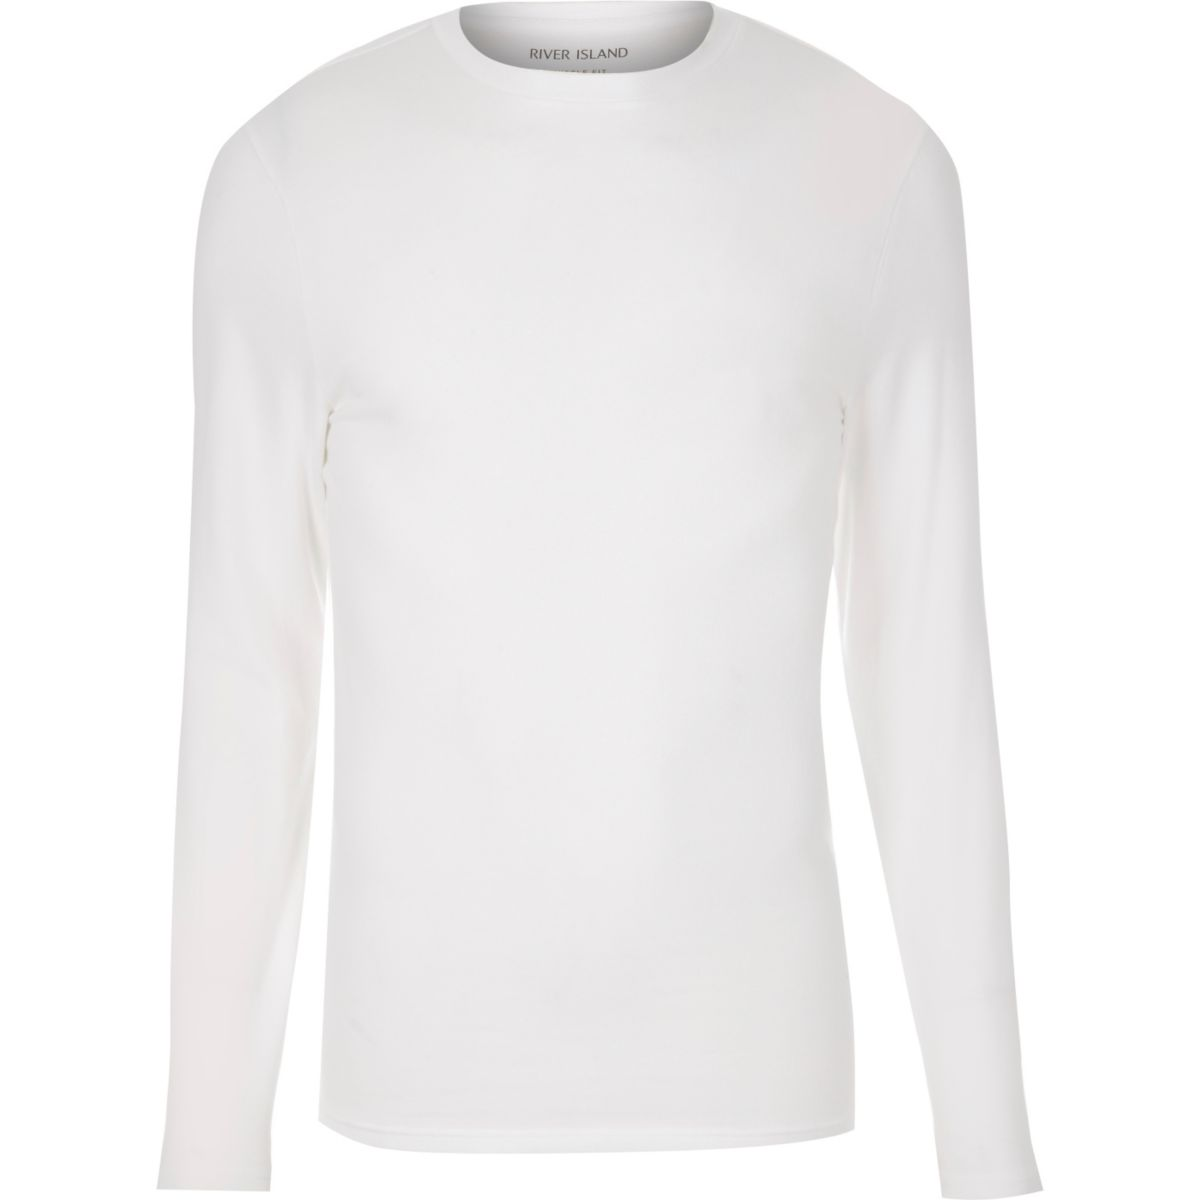 White muscle fit long sleeve T-shirt - T-Shirts & Vests - Sale - men